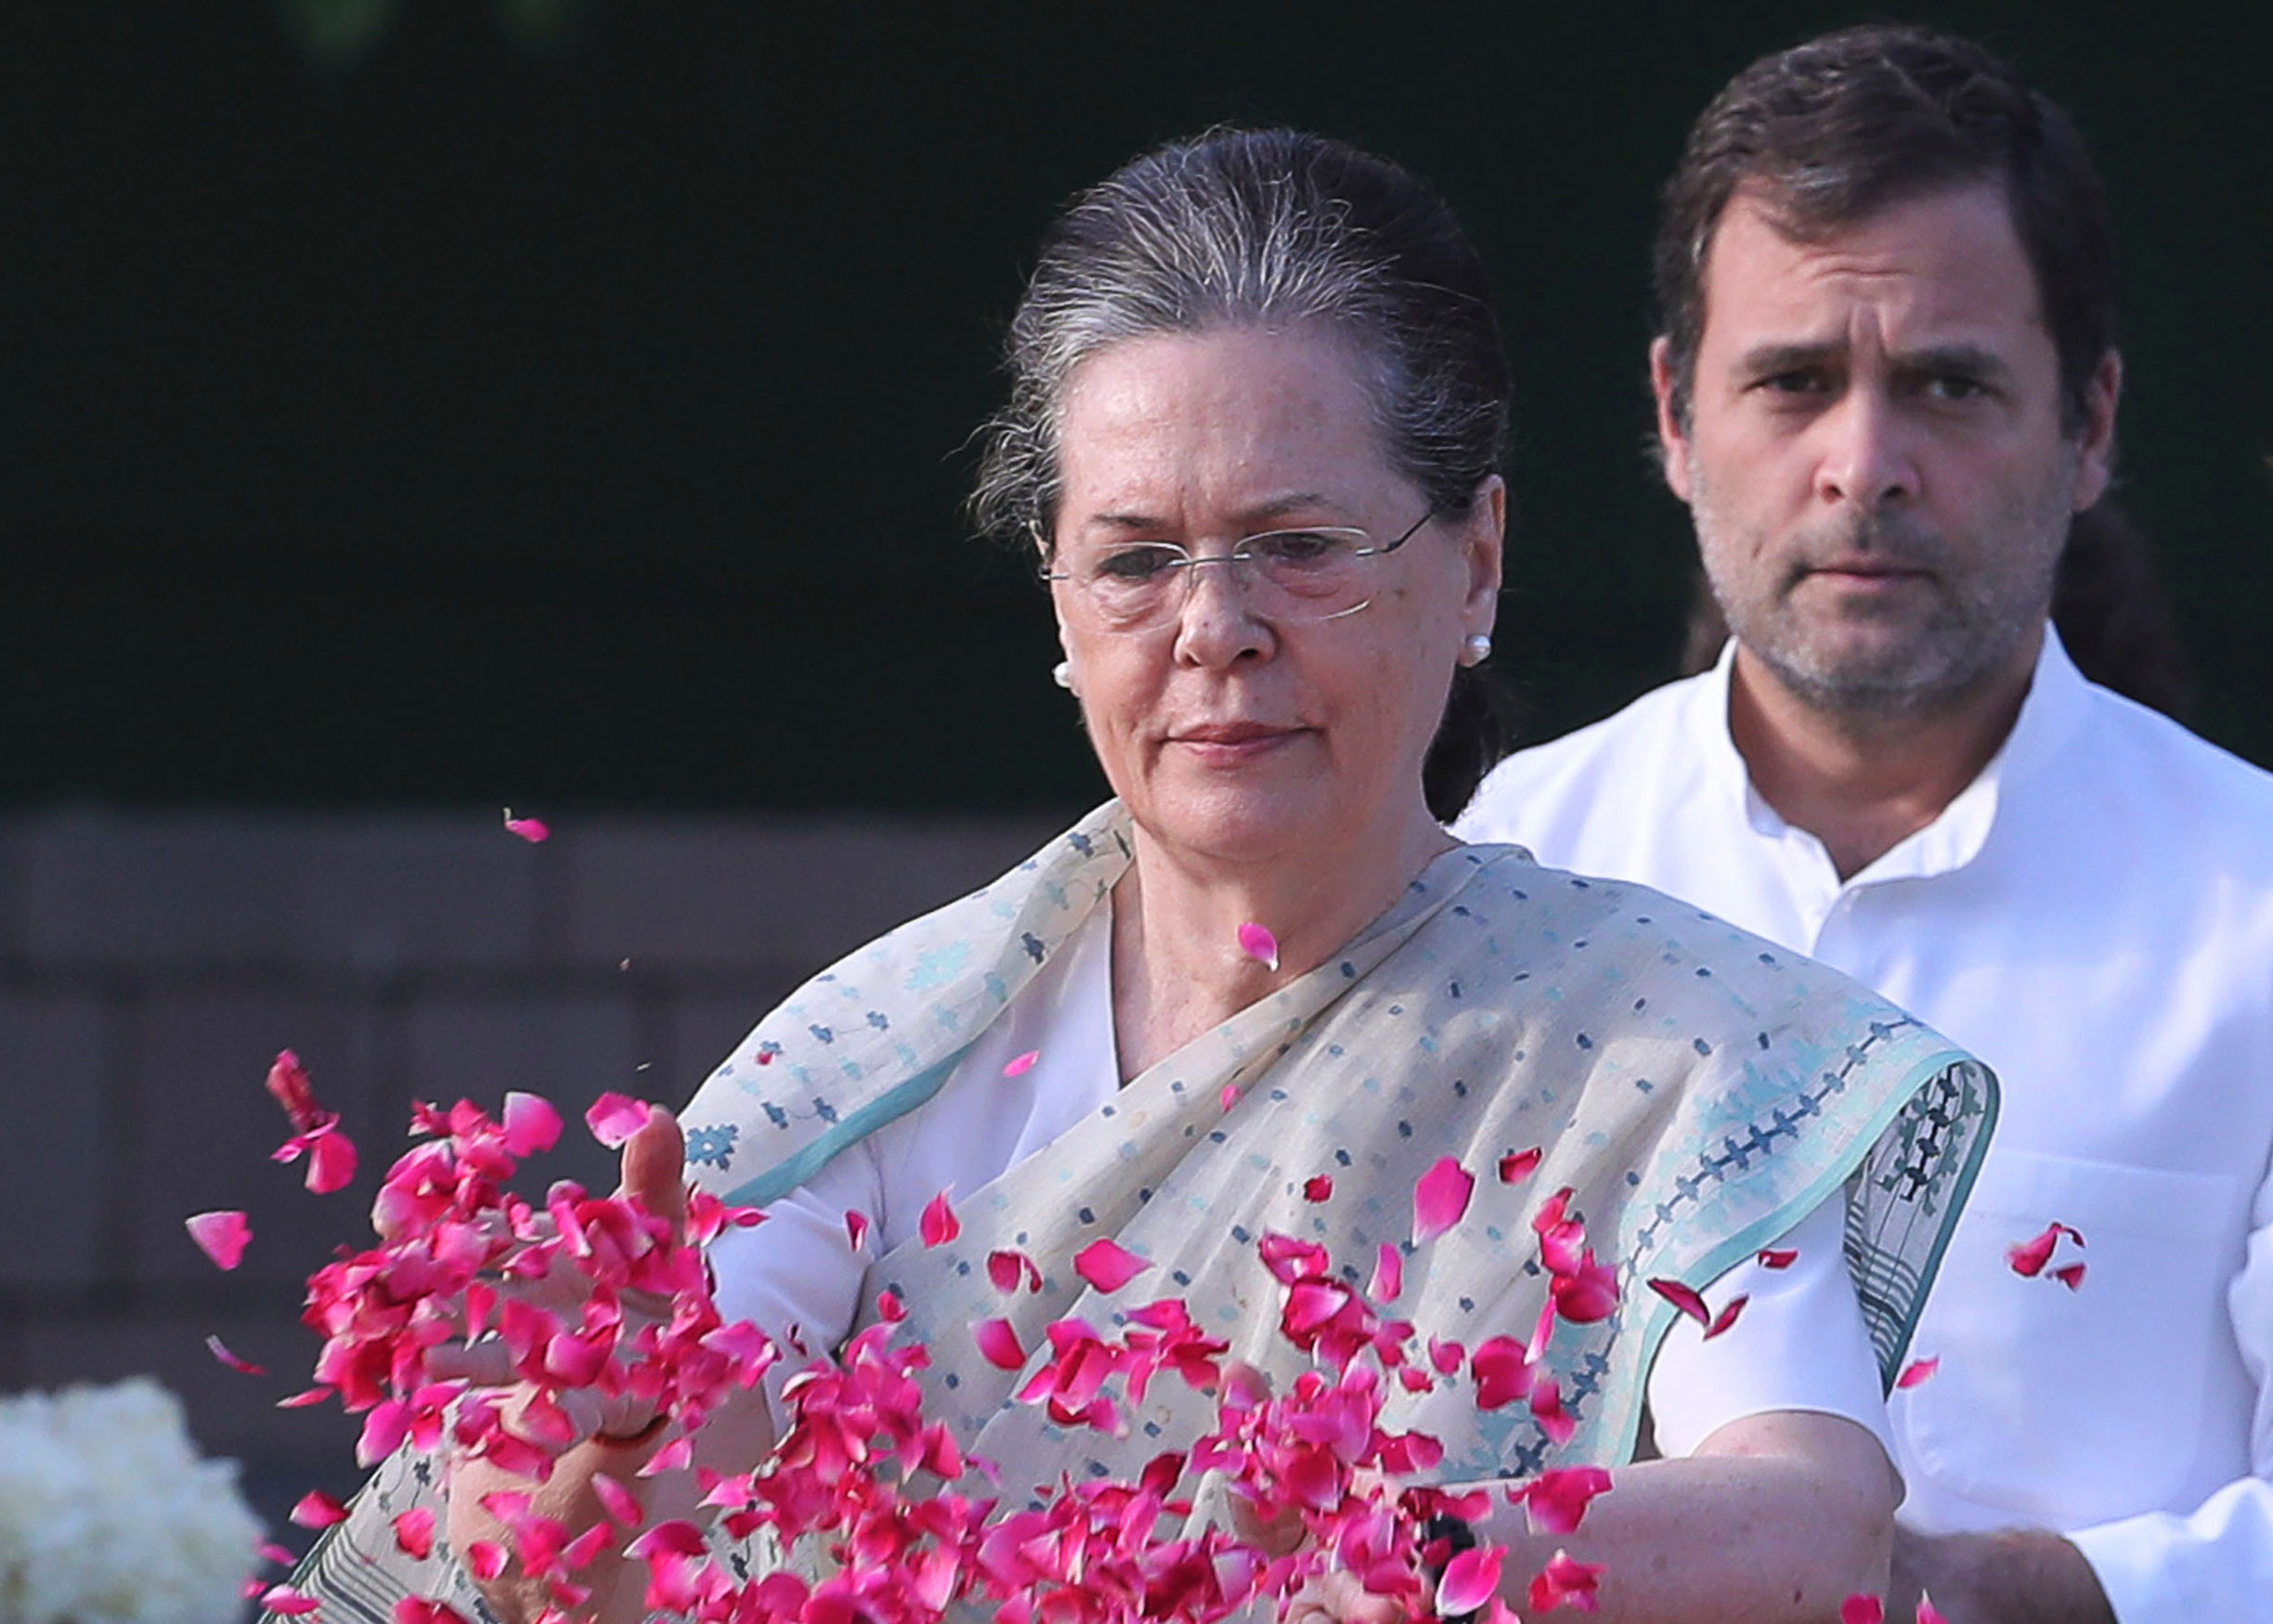 Sonia Gandhi, left, had led the Congress for 19 years before handing over the baton to her son Rahul Gandhi (right). Now she has returned as the interim party president.